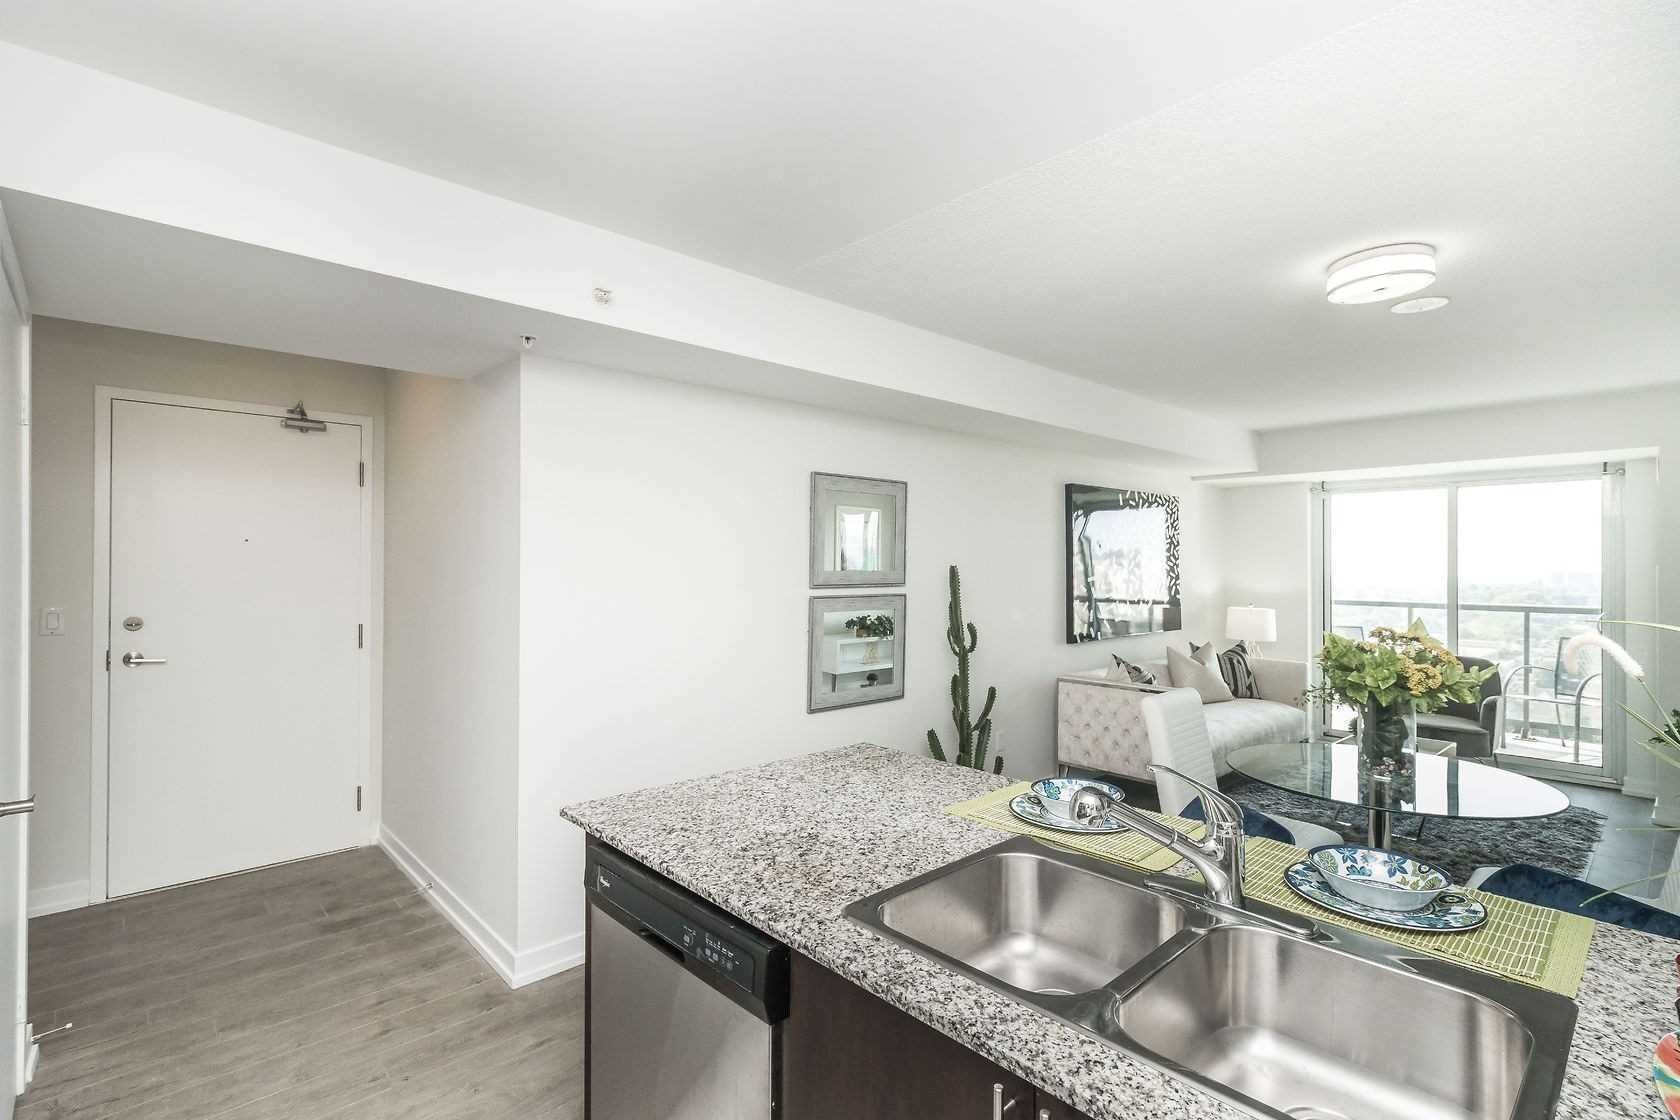 1410 Dupont St, unit 1505 for sale in Toronto - image #1